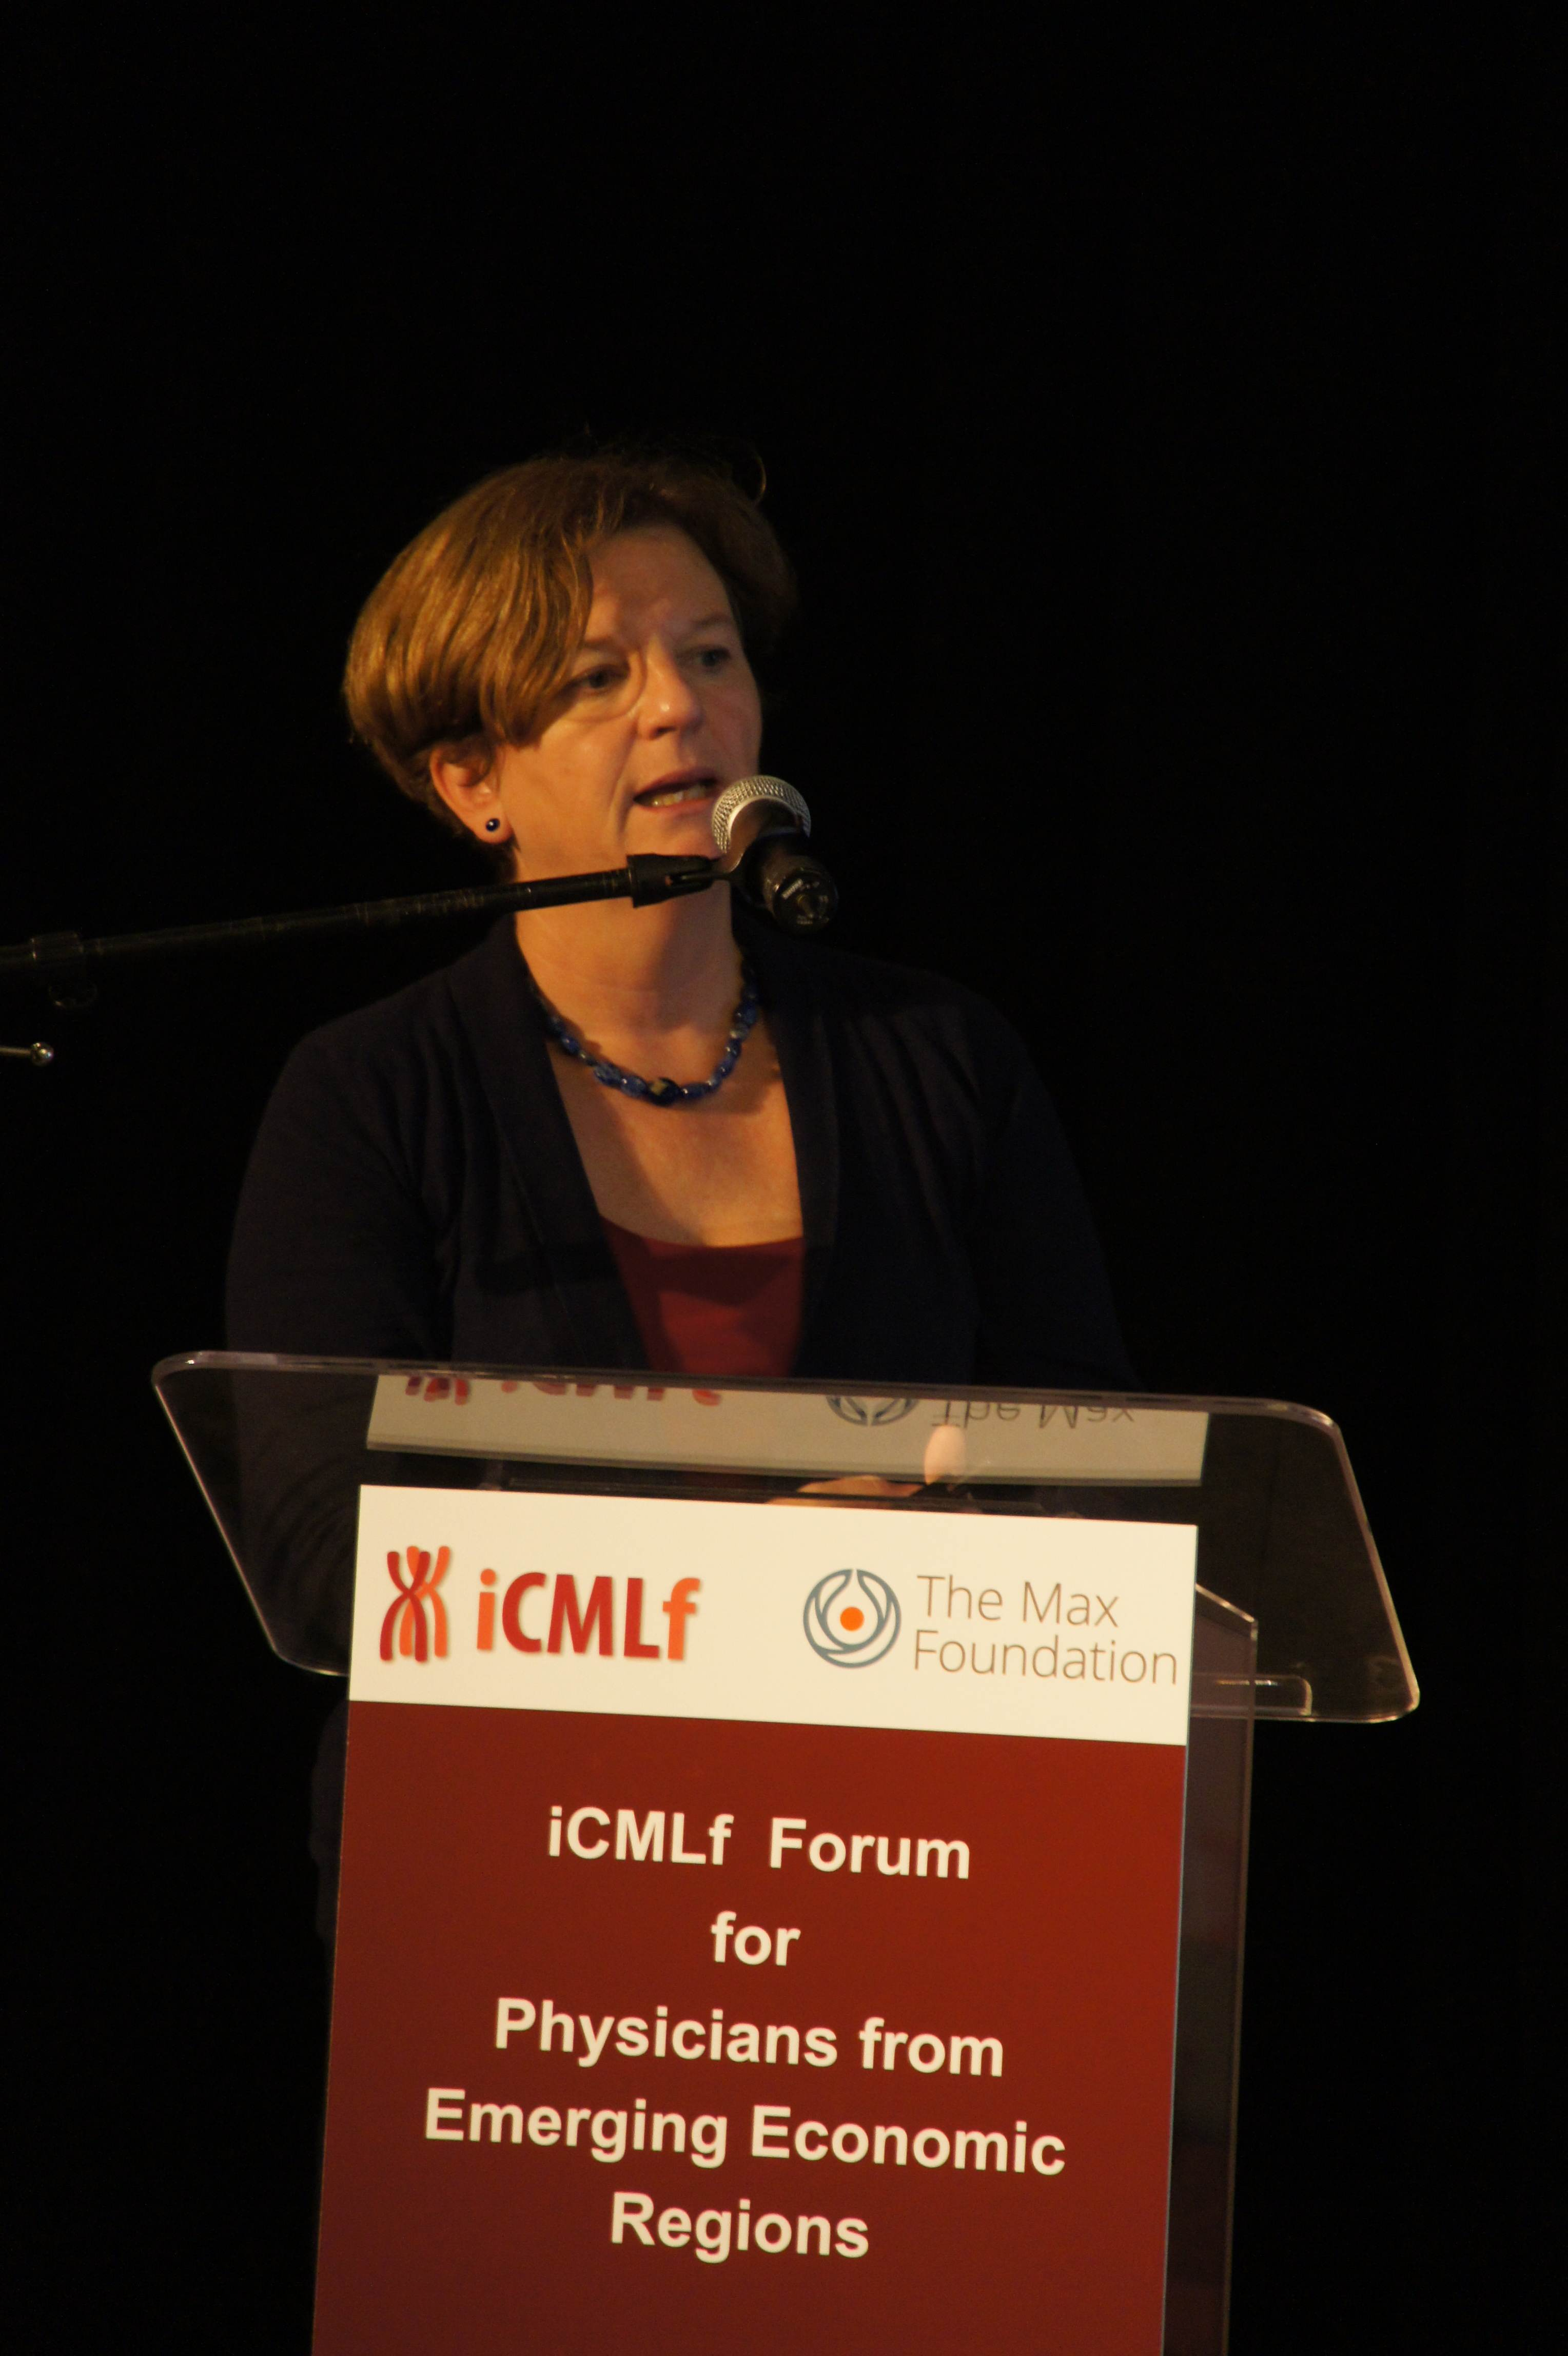 iCMLf Forum 2014 Jane Apperley